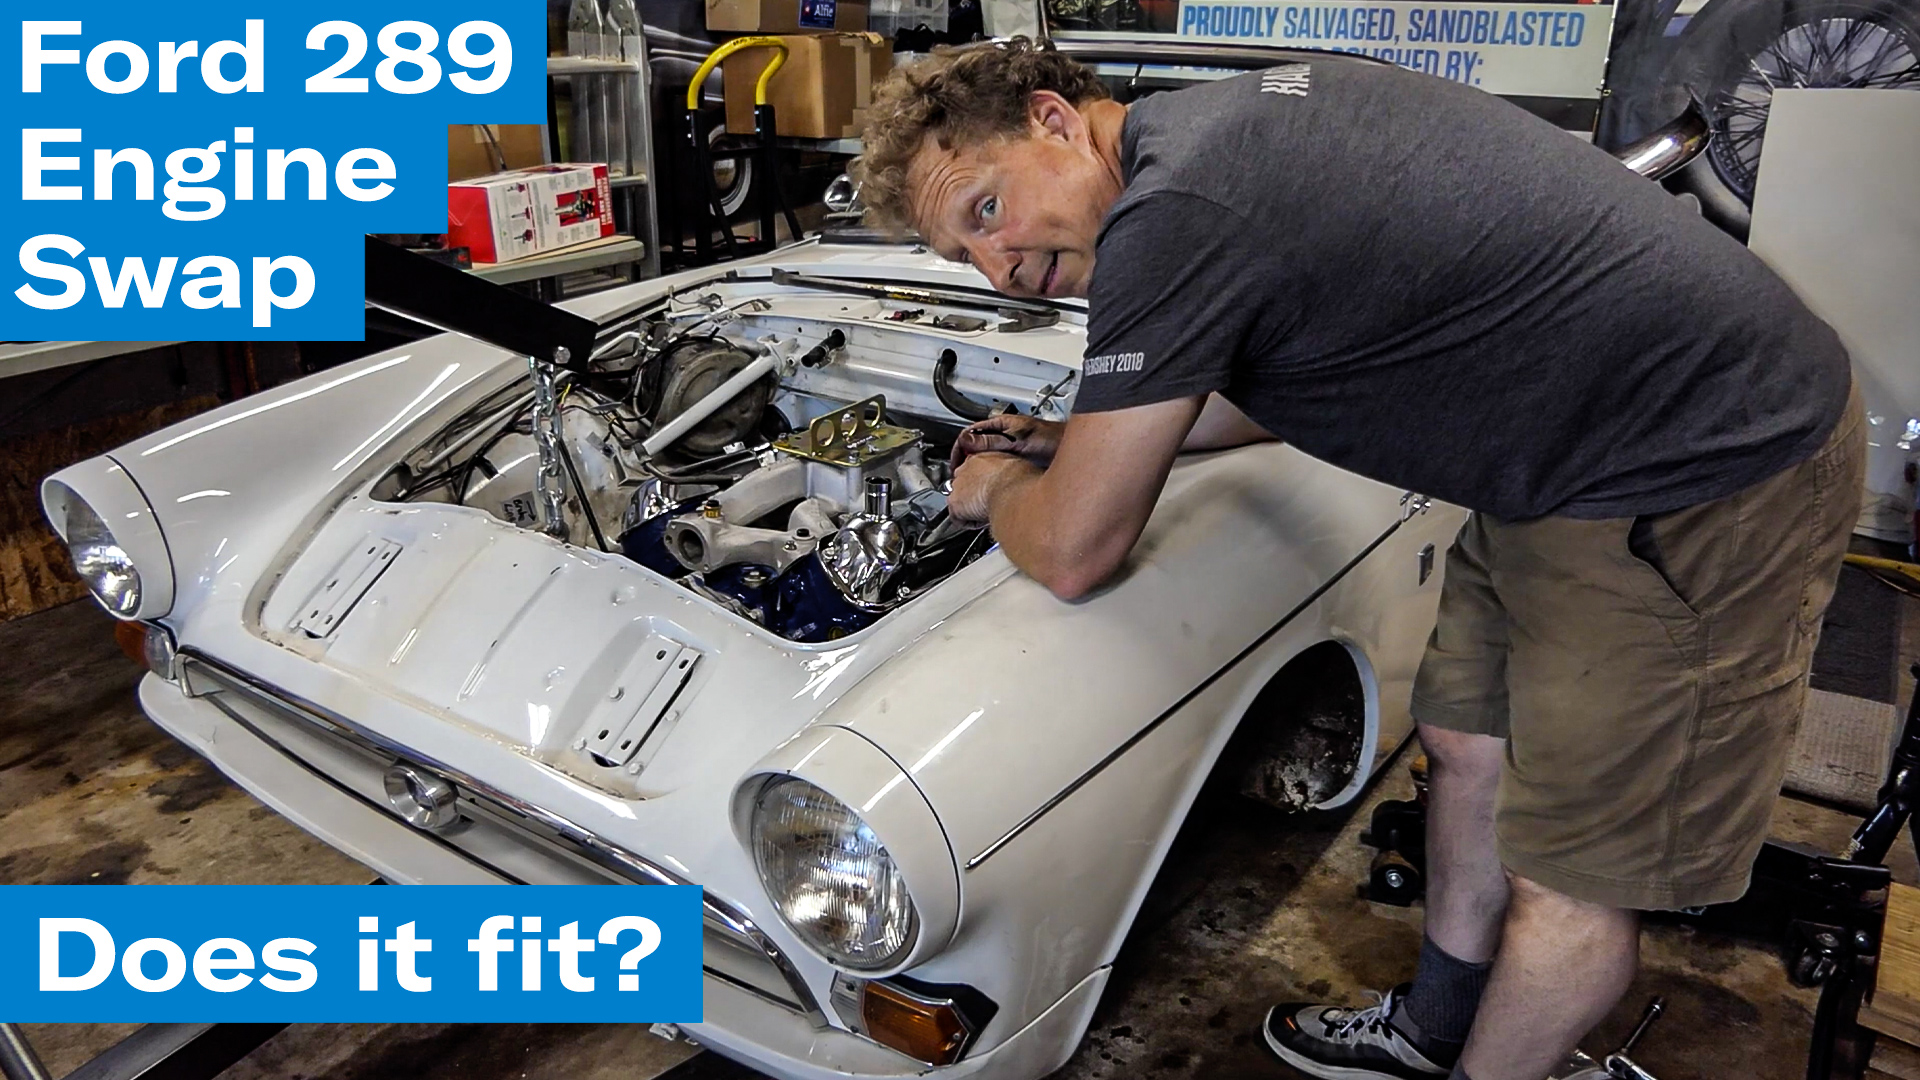 Ford 289 Sunbeam Tiger engine swap project